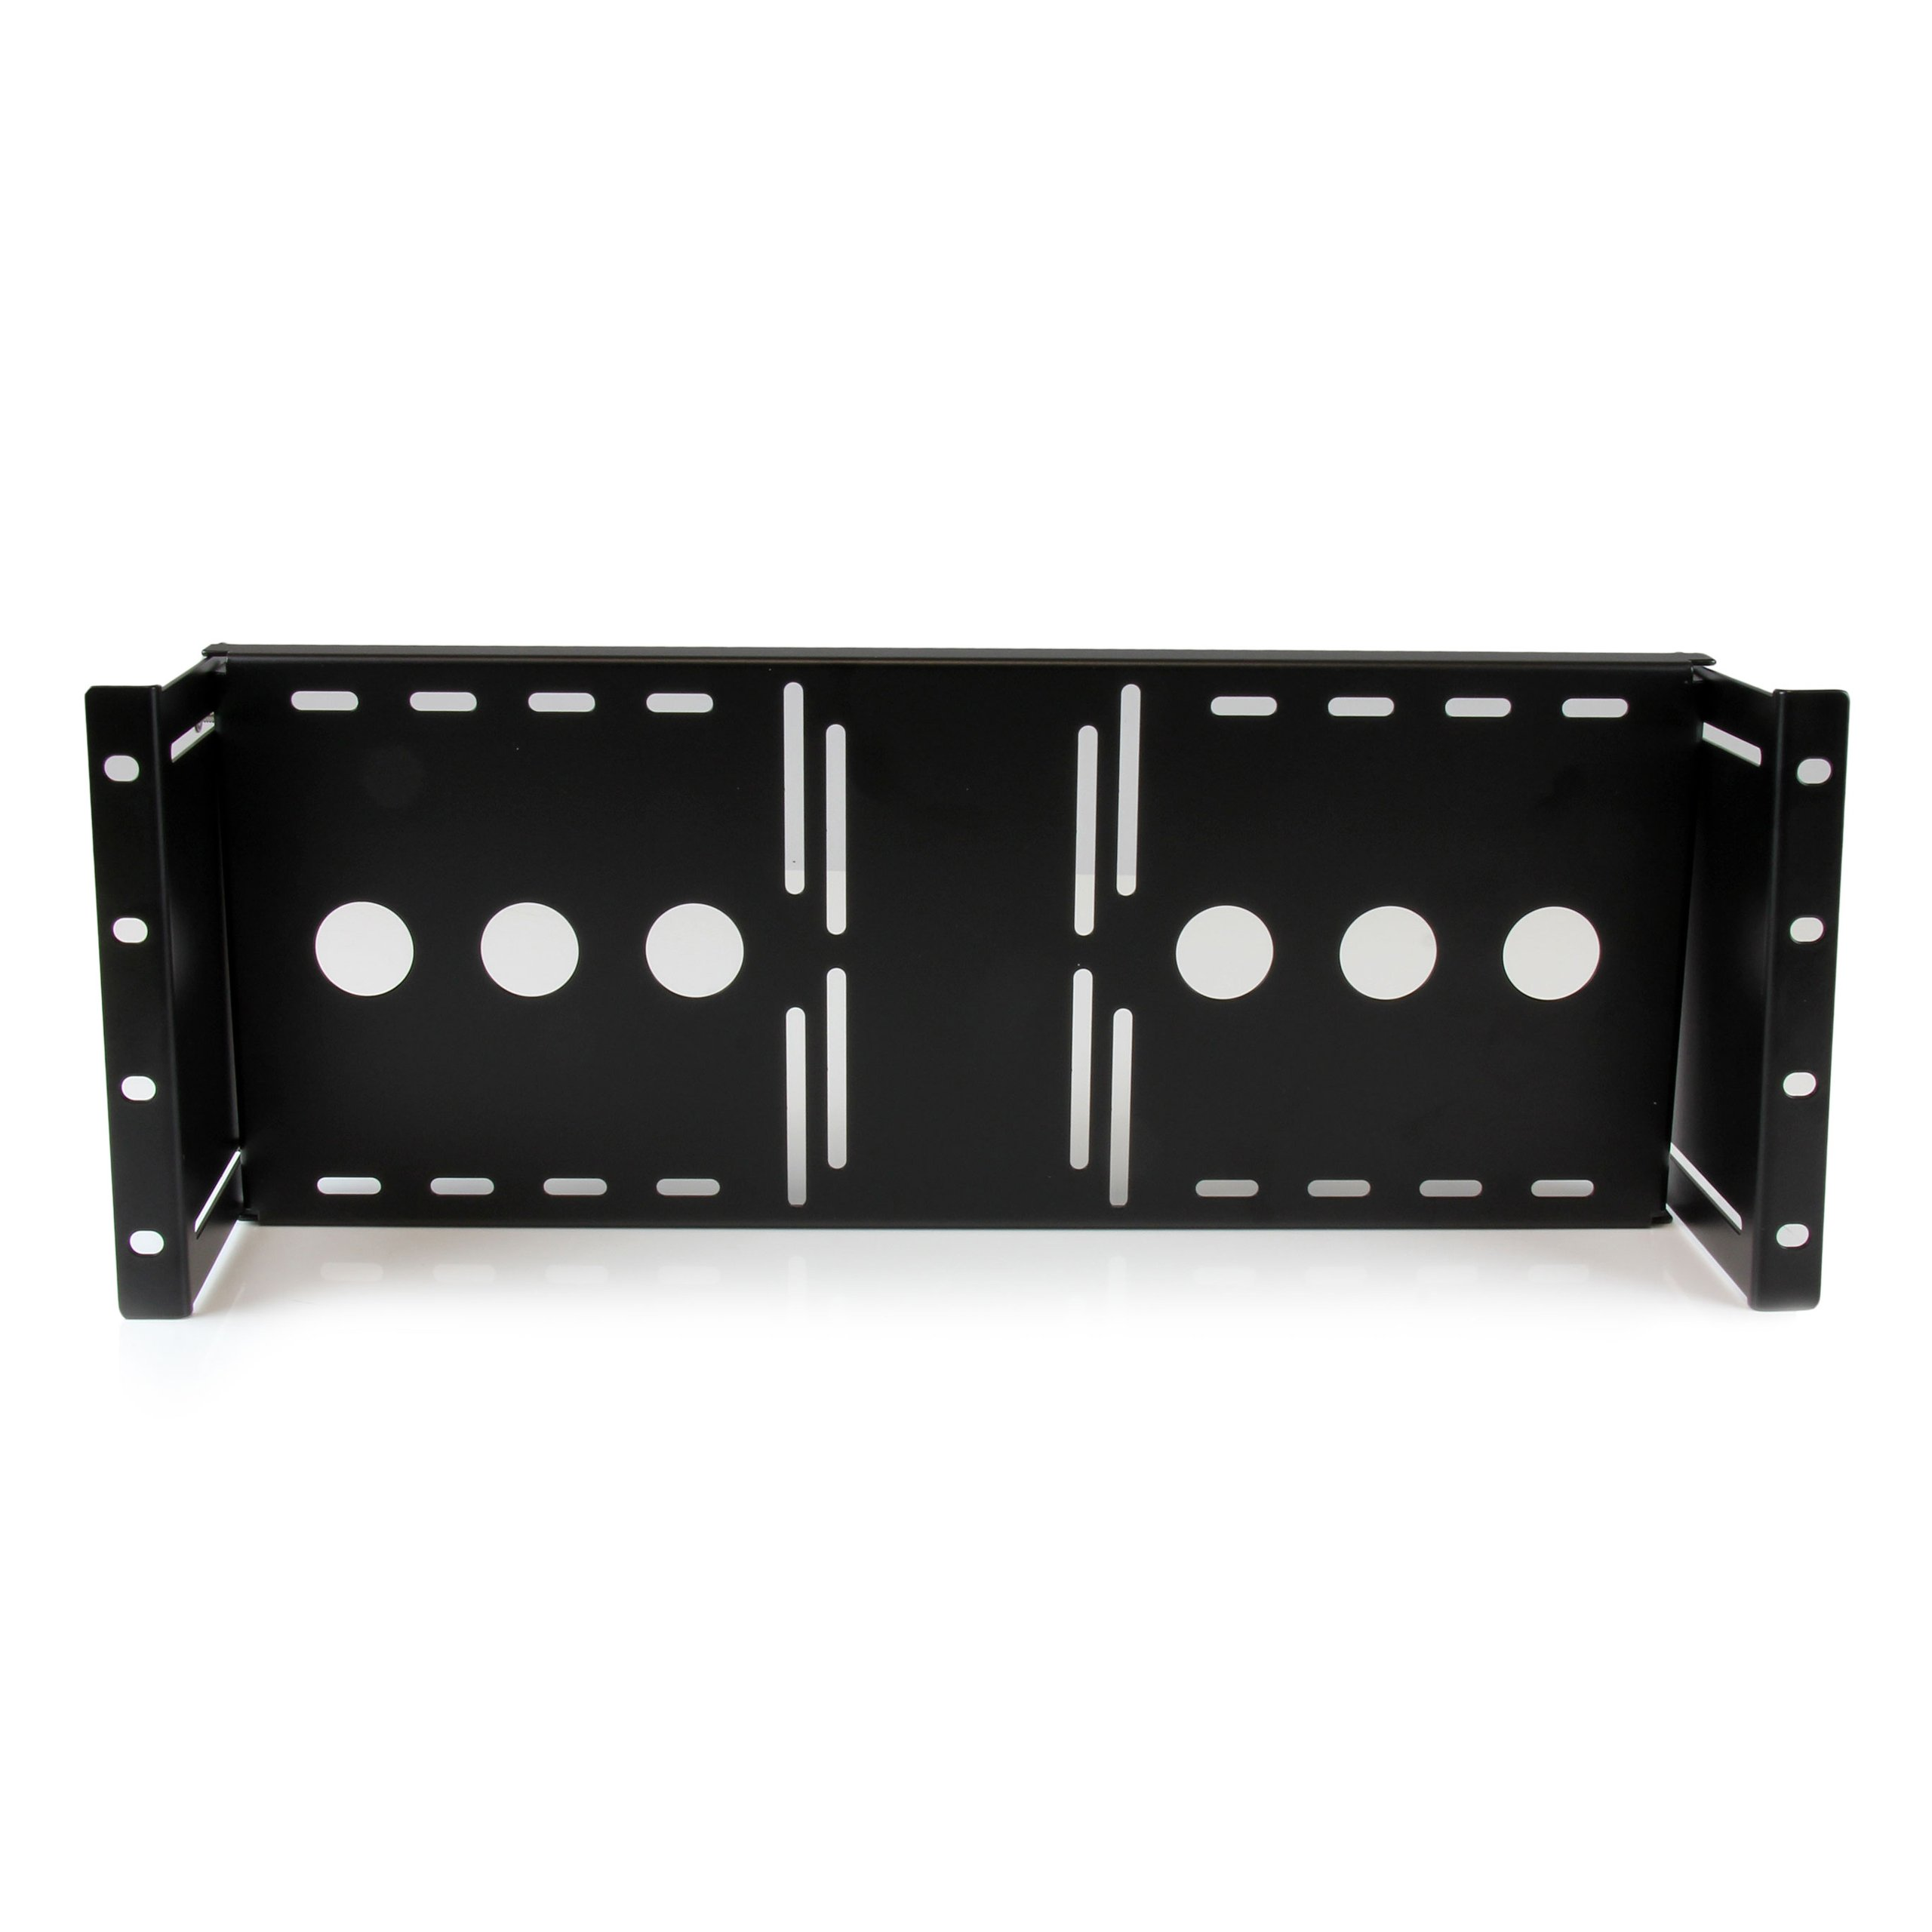 StarTech.com Universal VESA LCD Monitor Mounting Bracket for 19in Rack or Cabinet (RKLCDBK)